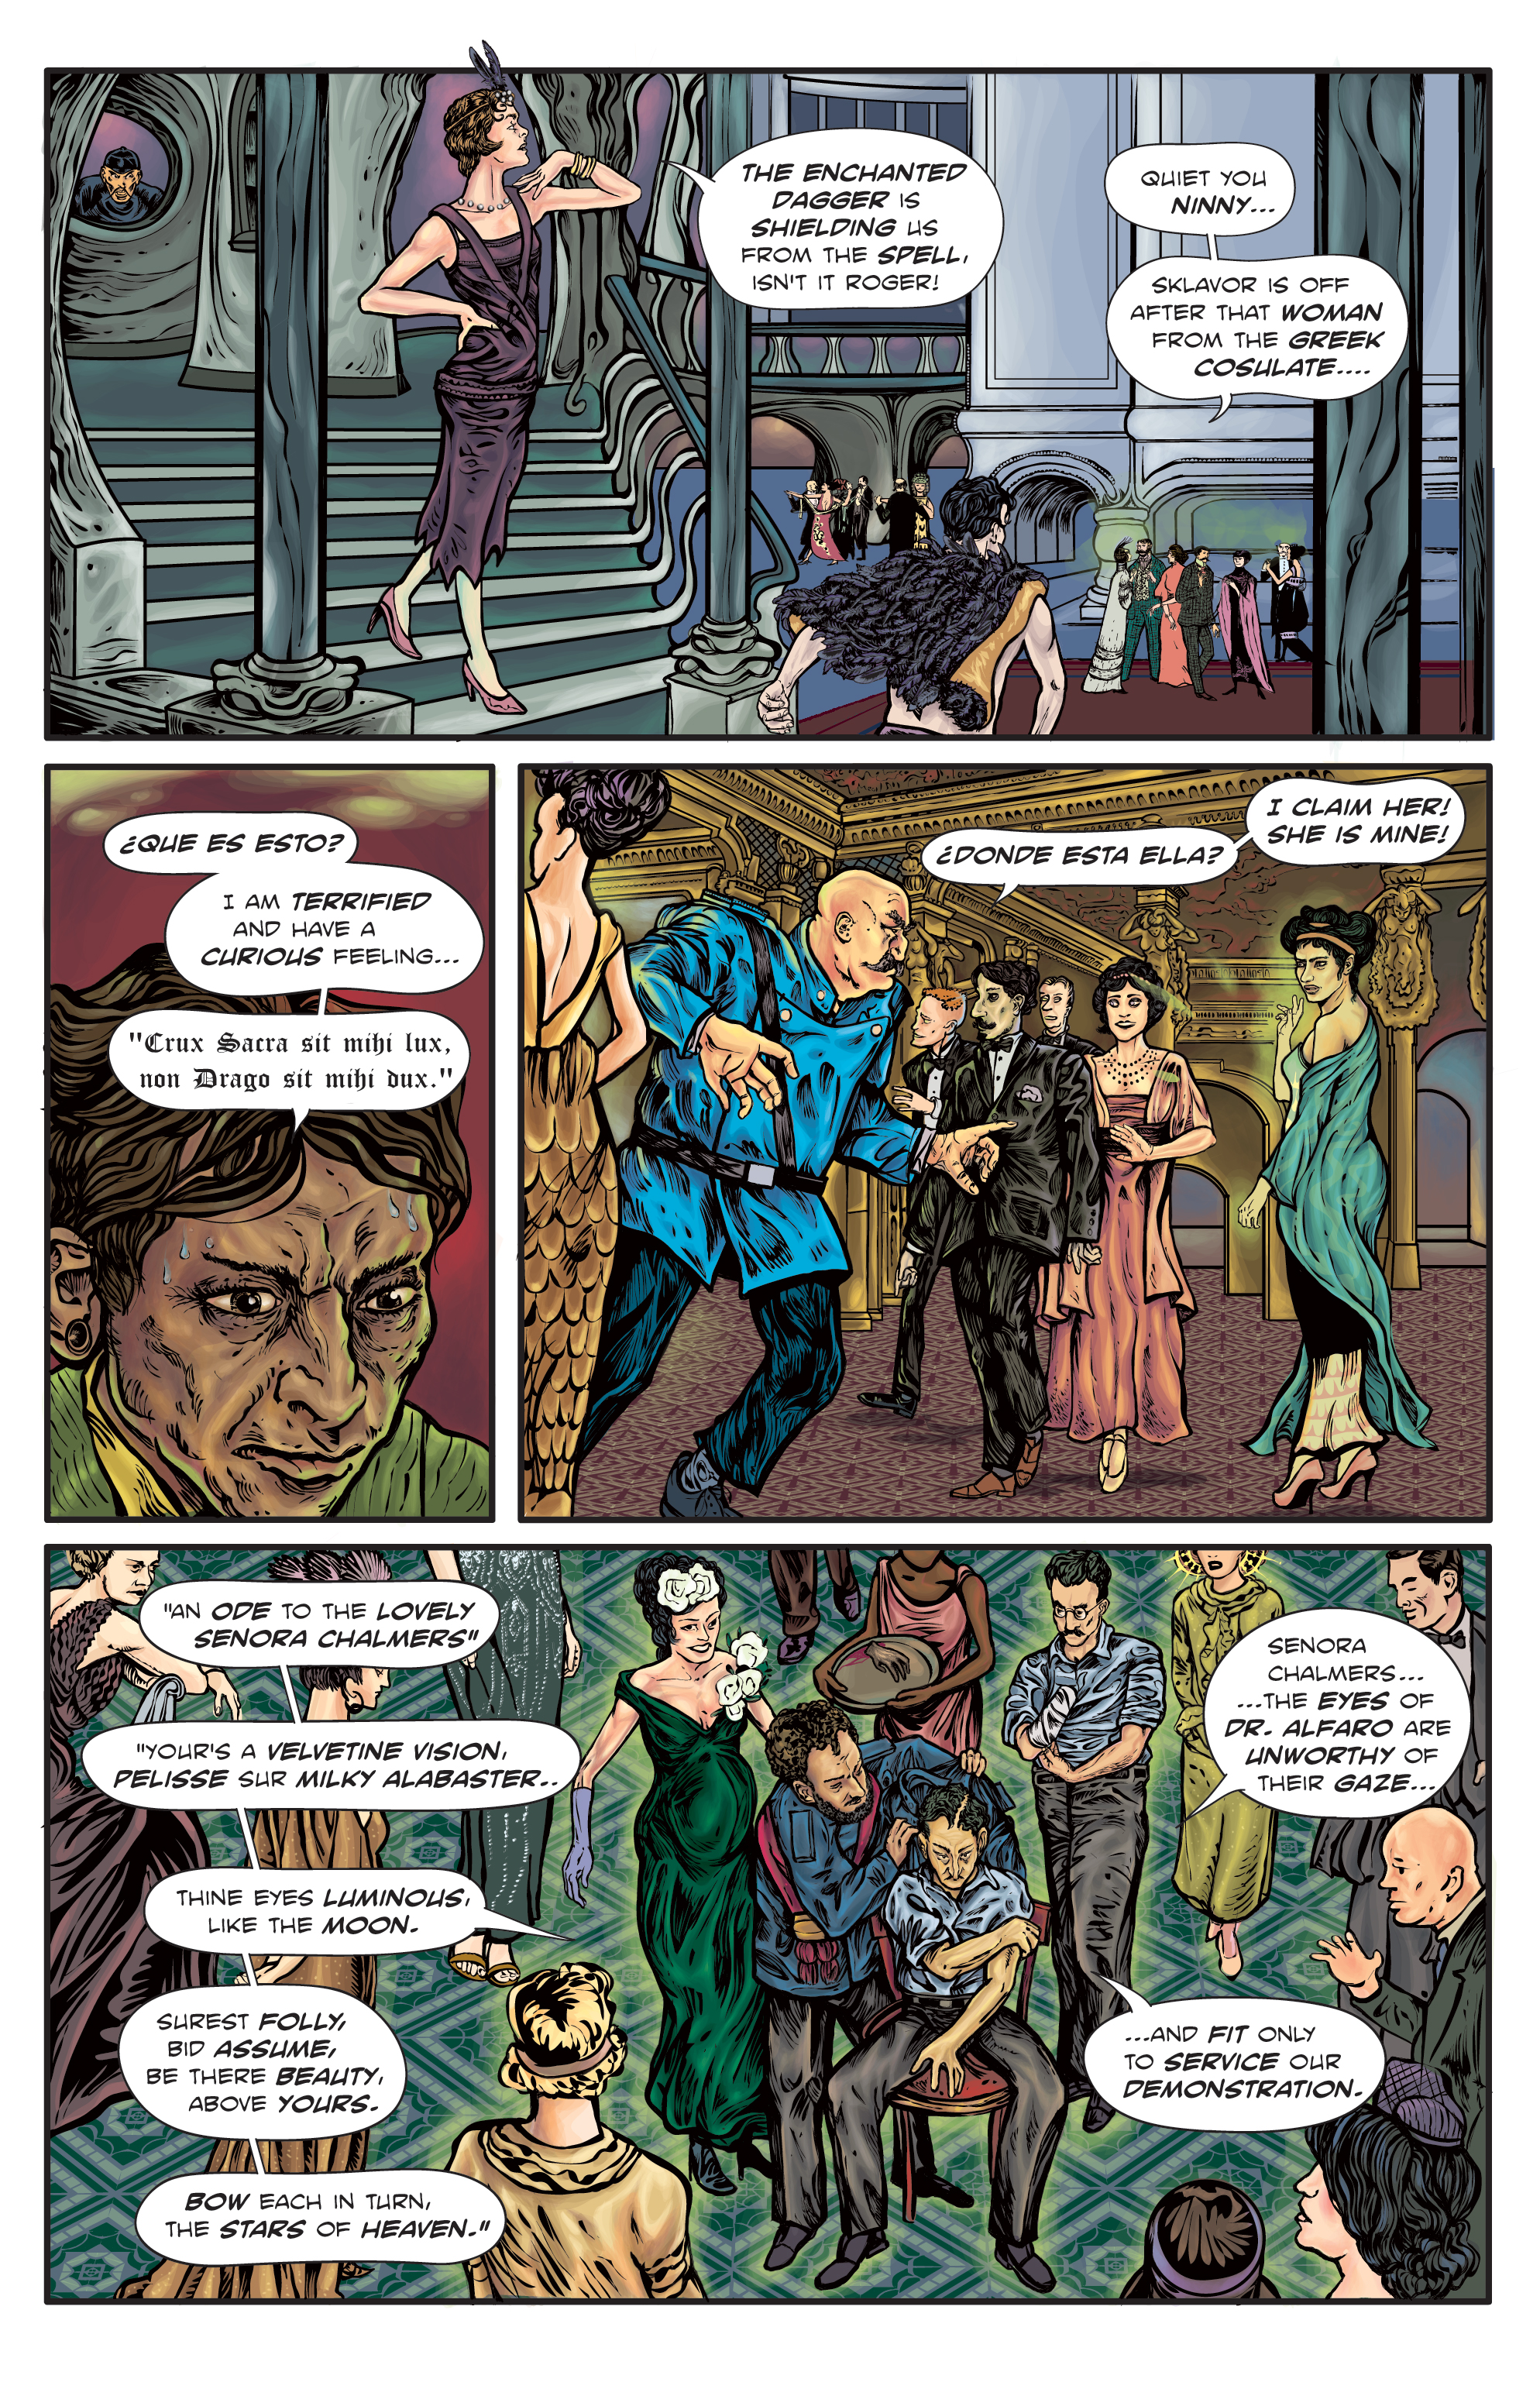 The Enchanted Dagger #4 – Page 13